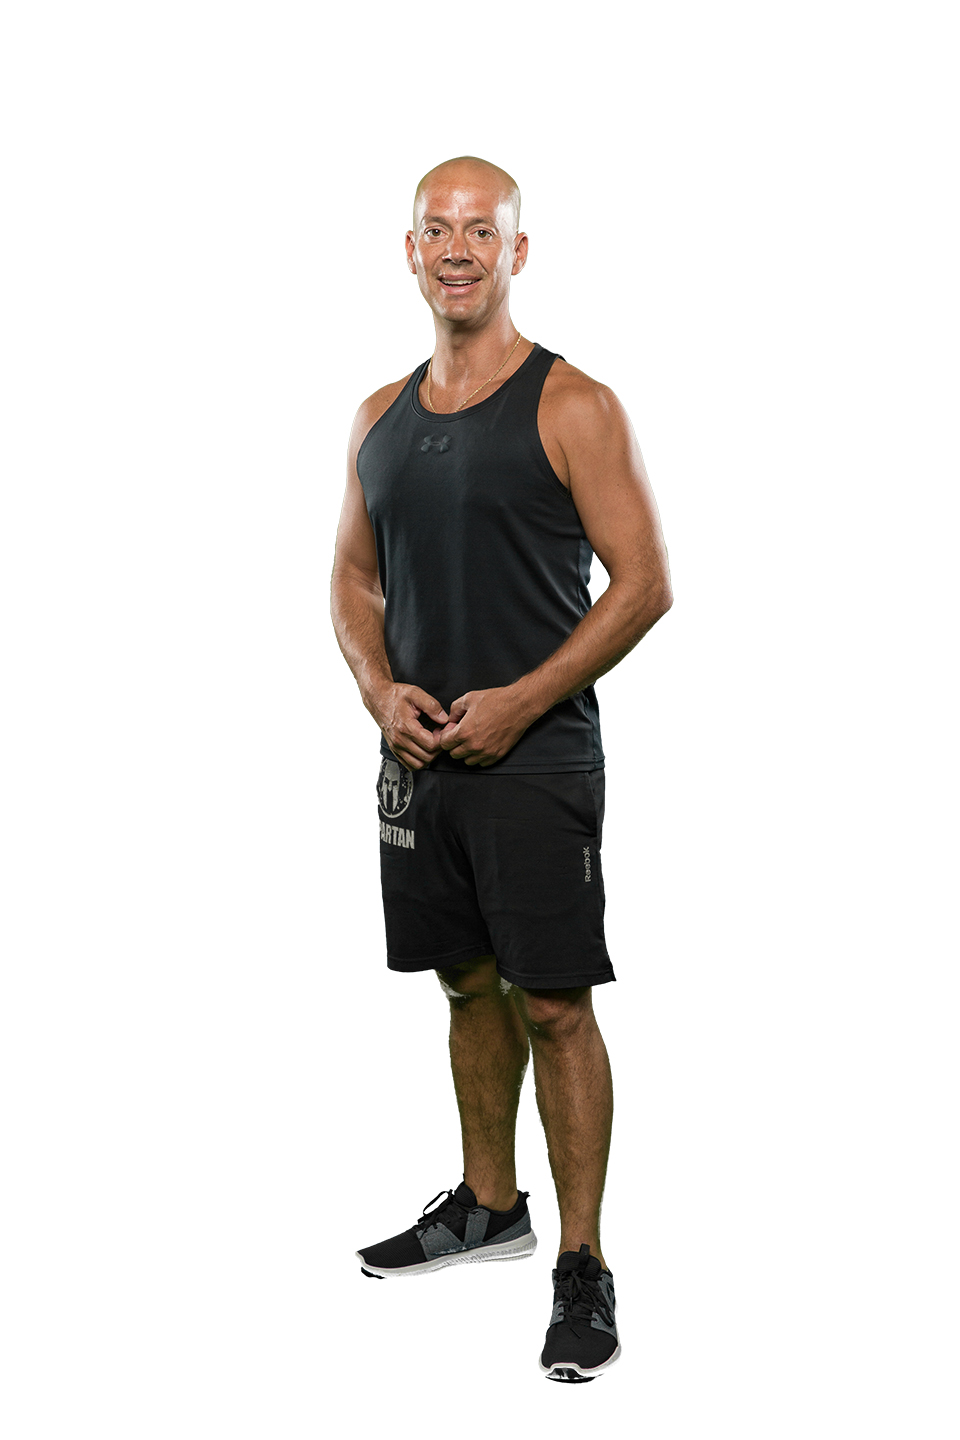 "Brian - BodyAttack InstructorBrian is a proud father of 2 boys and coaches their youth football team. He's always been involved in coaching sports. He thrives off of high energy, and can always be counted on to pass along that energy. His proudest moment in his athletic career so far is that he's the only person in Maine to complete the Spartan Ultra Beast in Killington, Vermont - it made the paper!Favorite quotes: ""Work hard, play harder!"" and ""Don't choose a path, blaze your own!"""